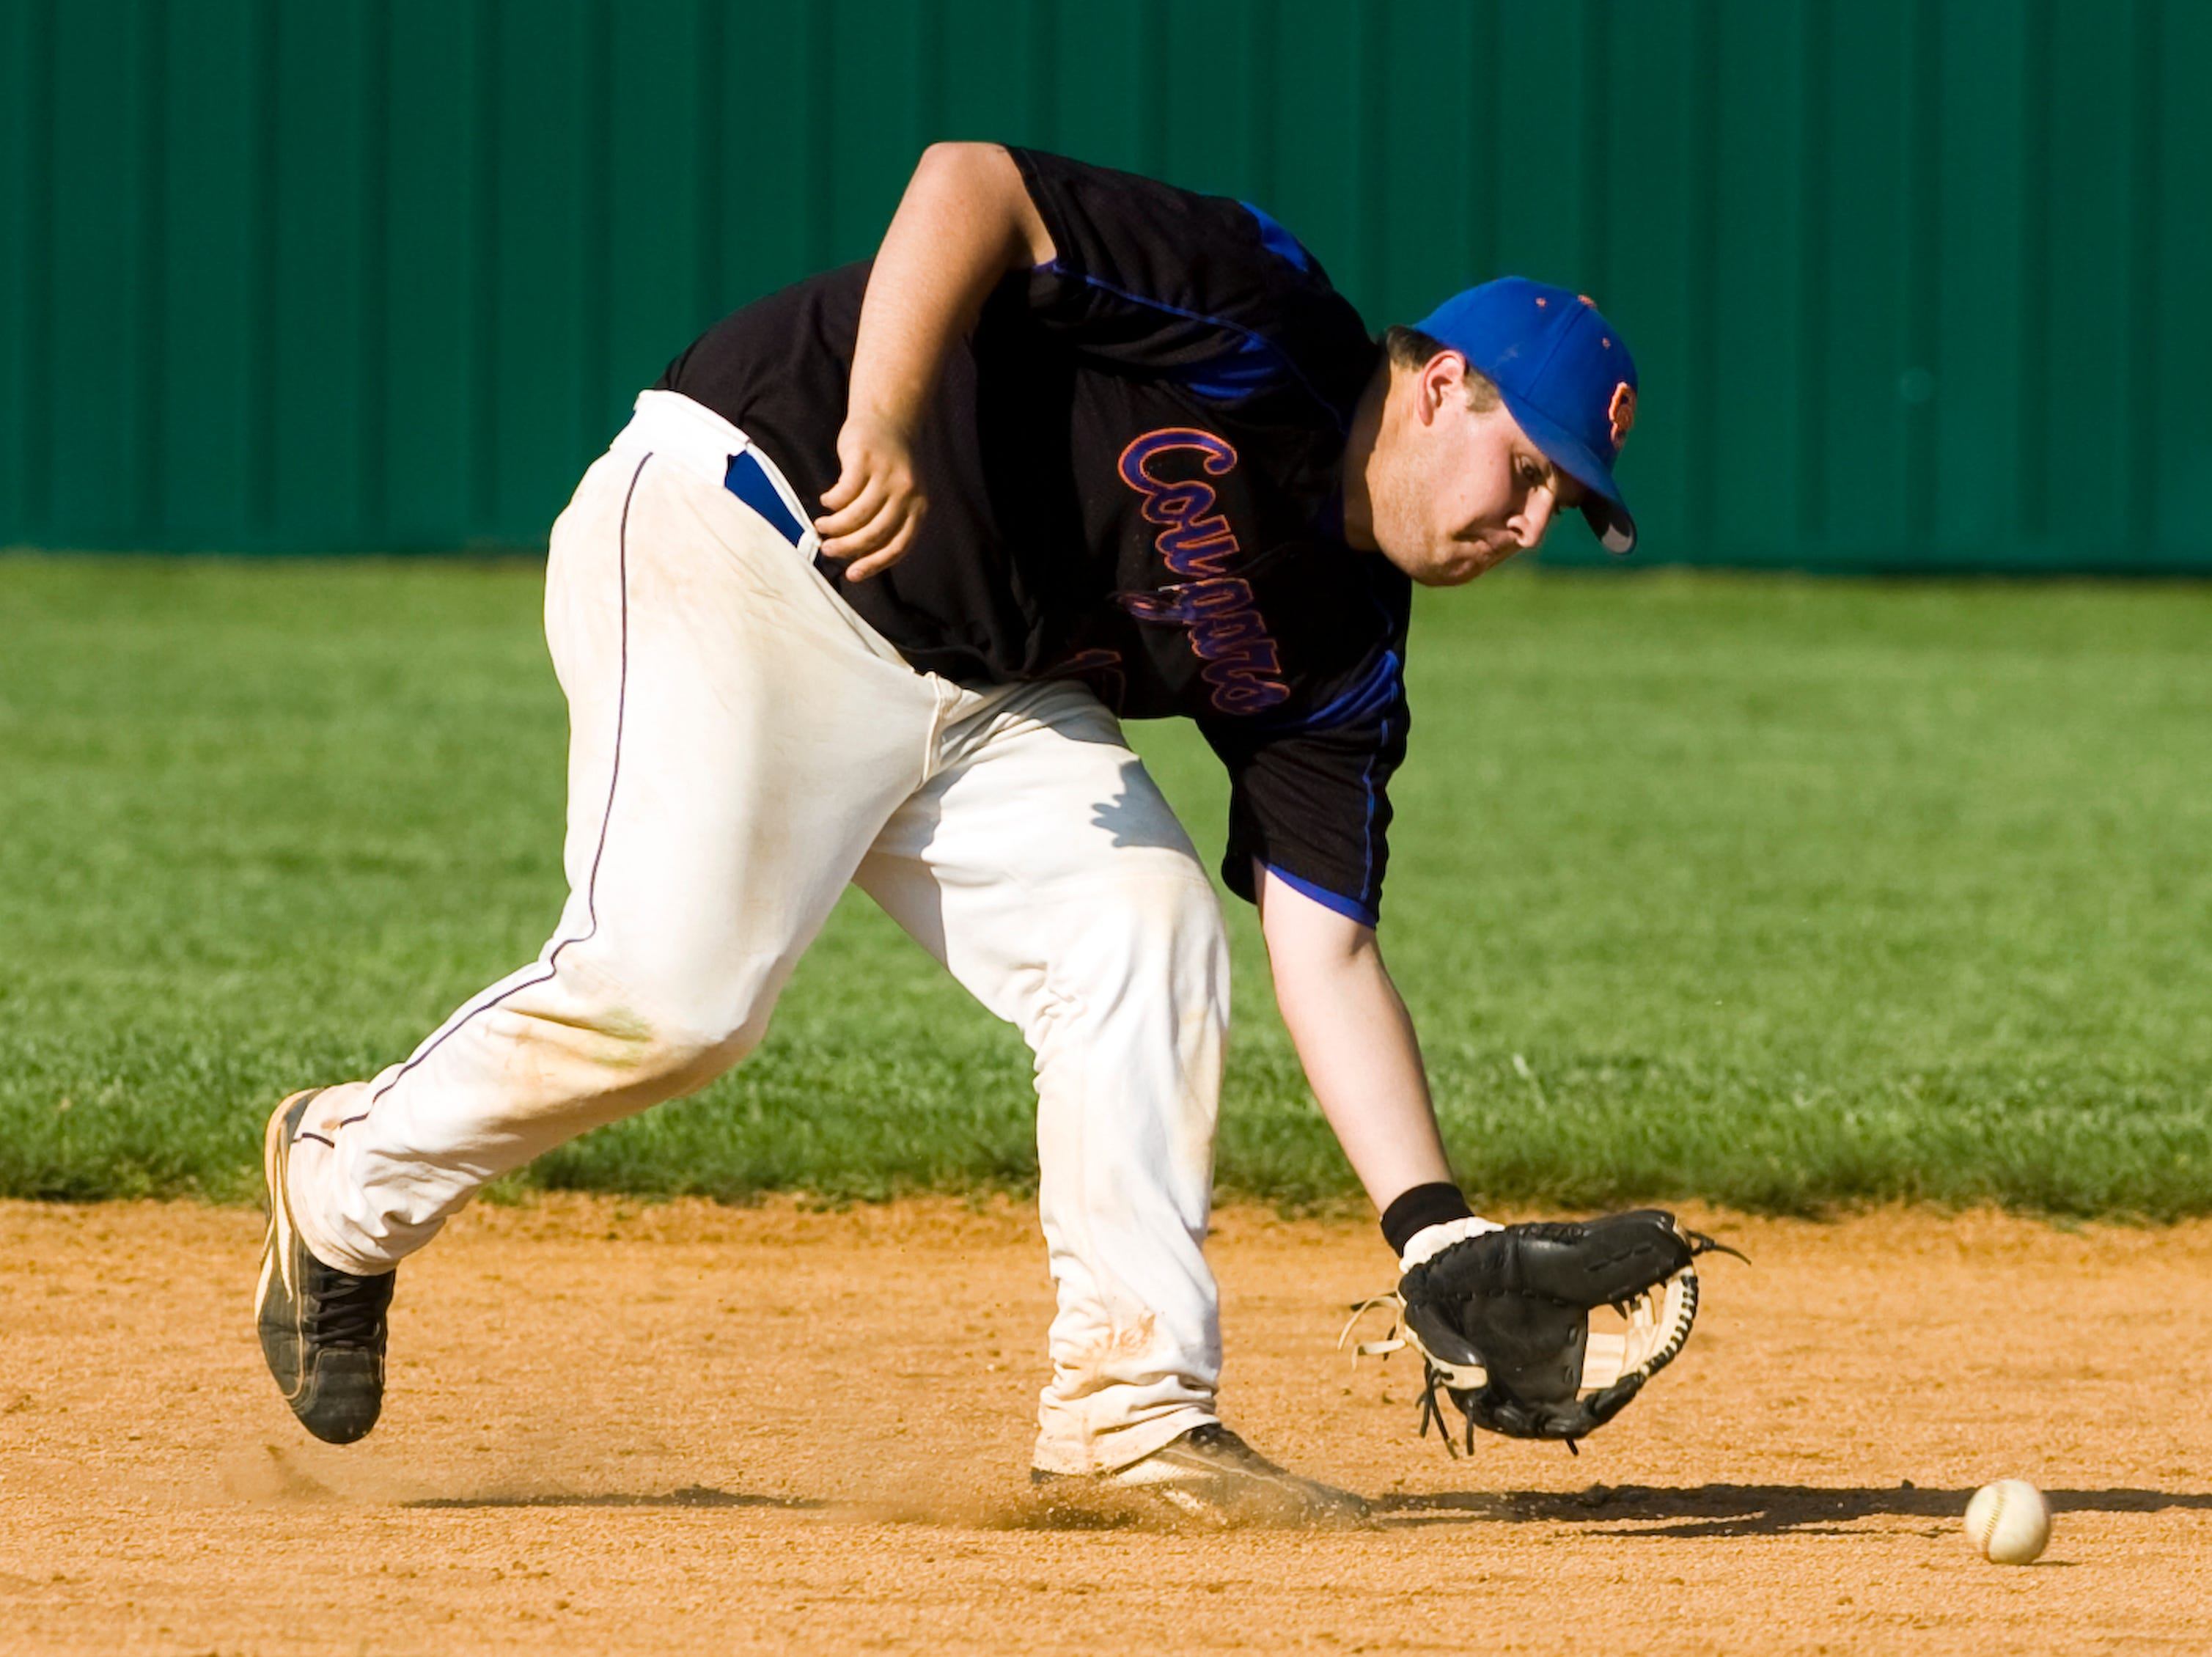 Campbell County's Billy Tindell goes after a ground hit. Halls defeats Campbell County 13-1 at Halls on Thursday, May. 6, 2010.